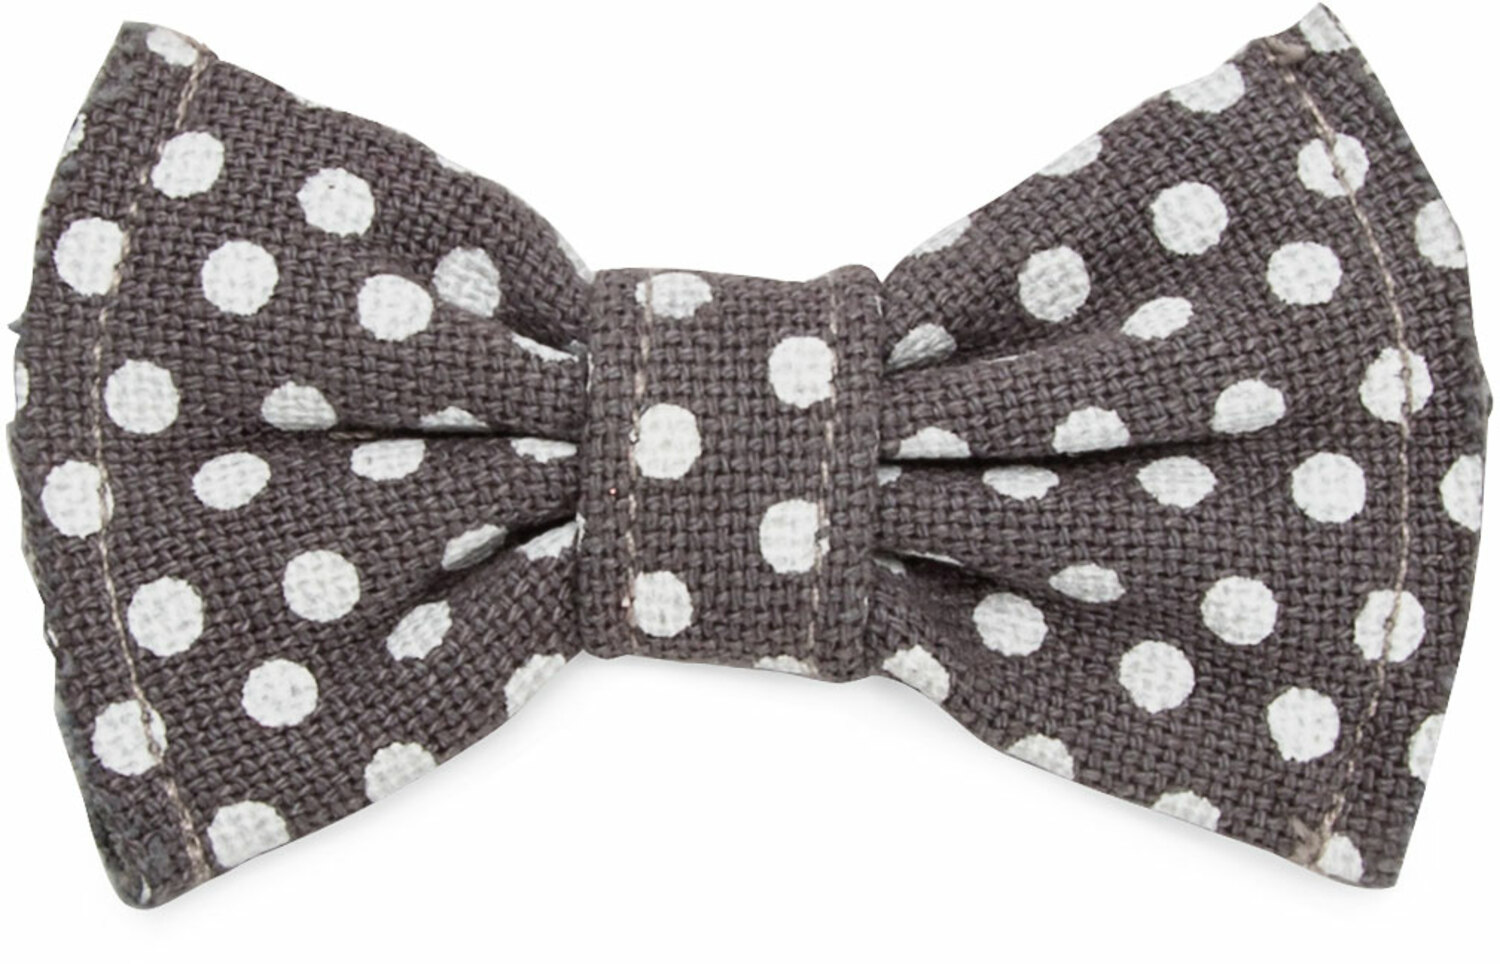 Polka Dots Small by Pavilion's Pets - Gray & White Canvas Polka Dot Small Dog Bow Tie